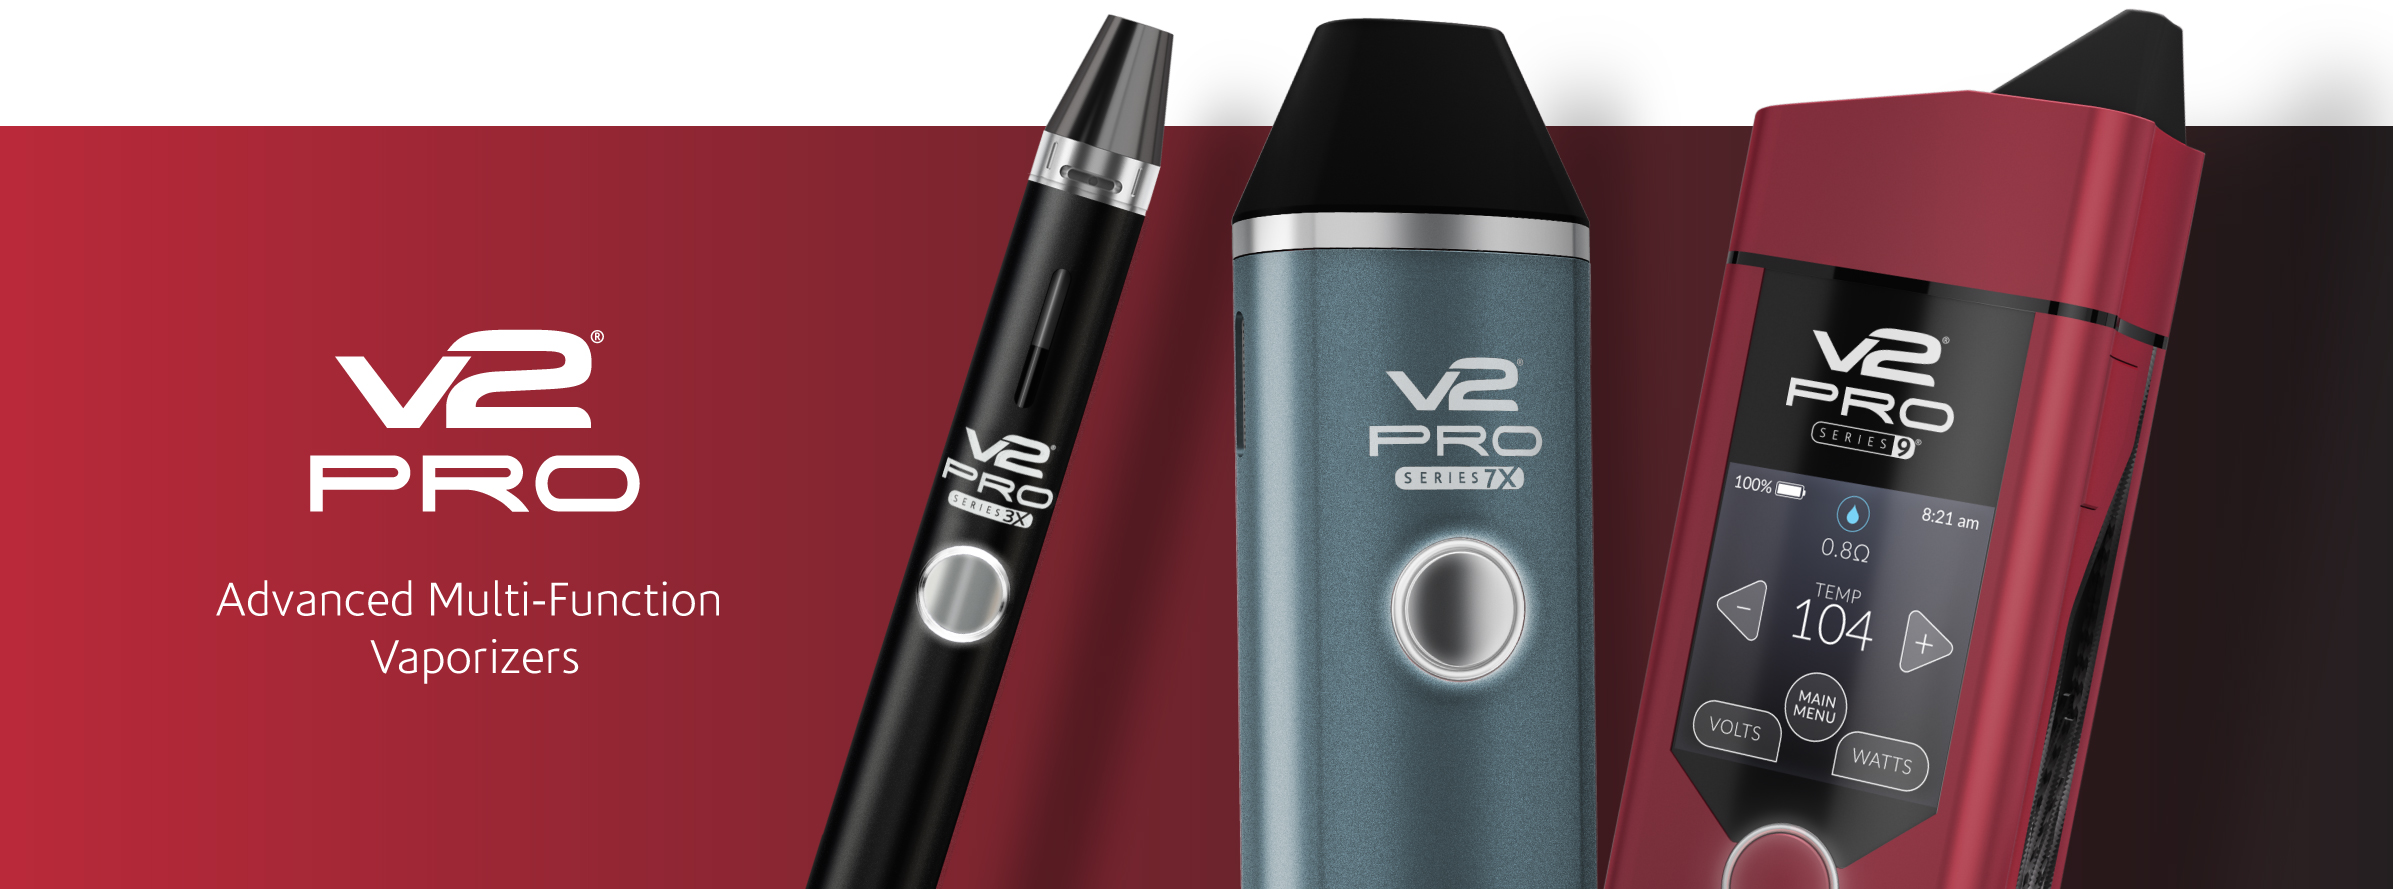 V2 Pro Vaporizers - Advanced Portable Vape Technology